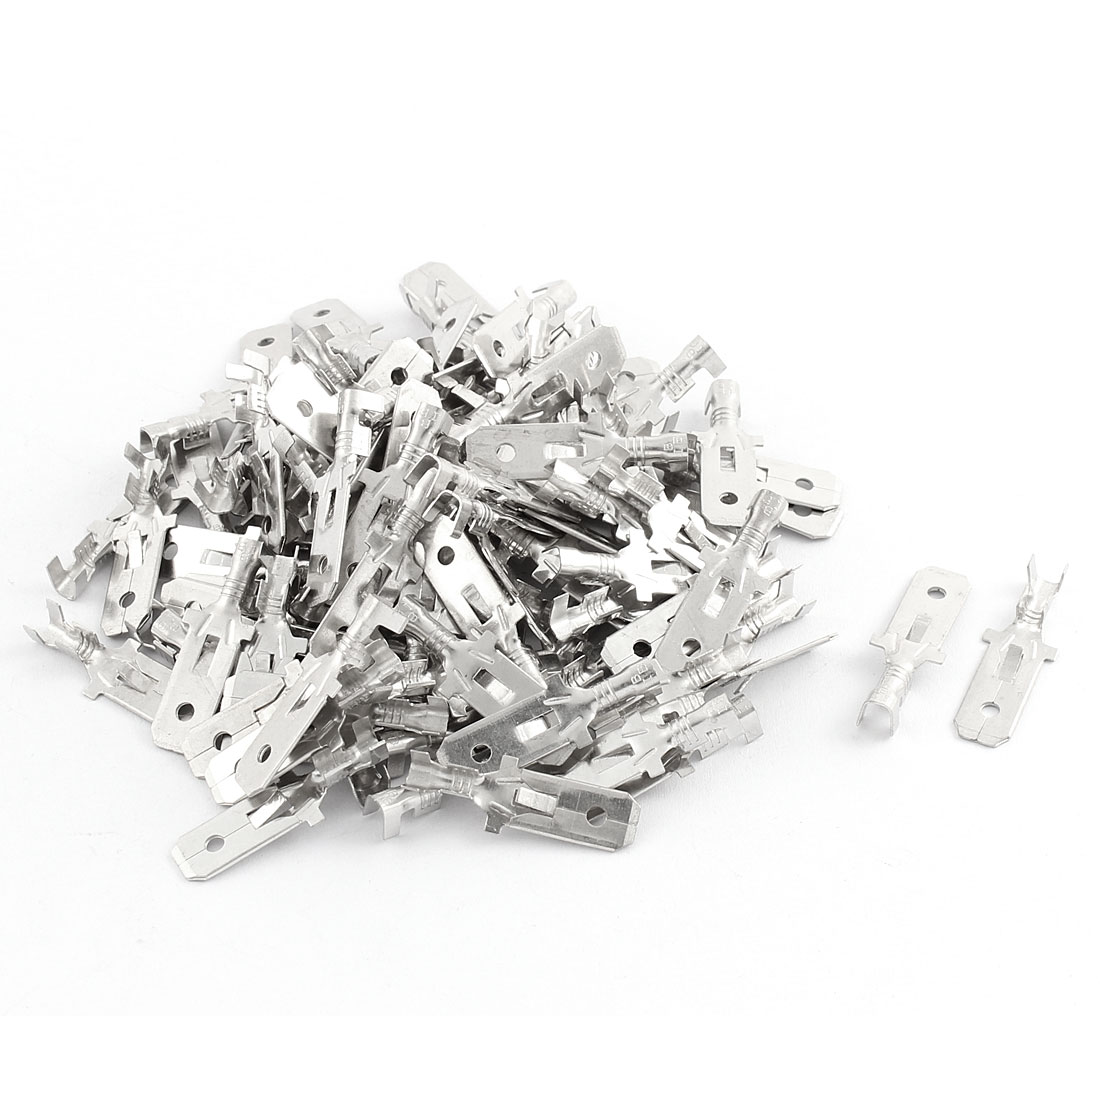 100 Pcs Metal 7.8mm Male Spade Terminal for Nylon Mult Pin Wire Connector 29mm